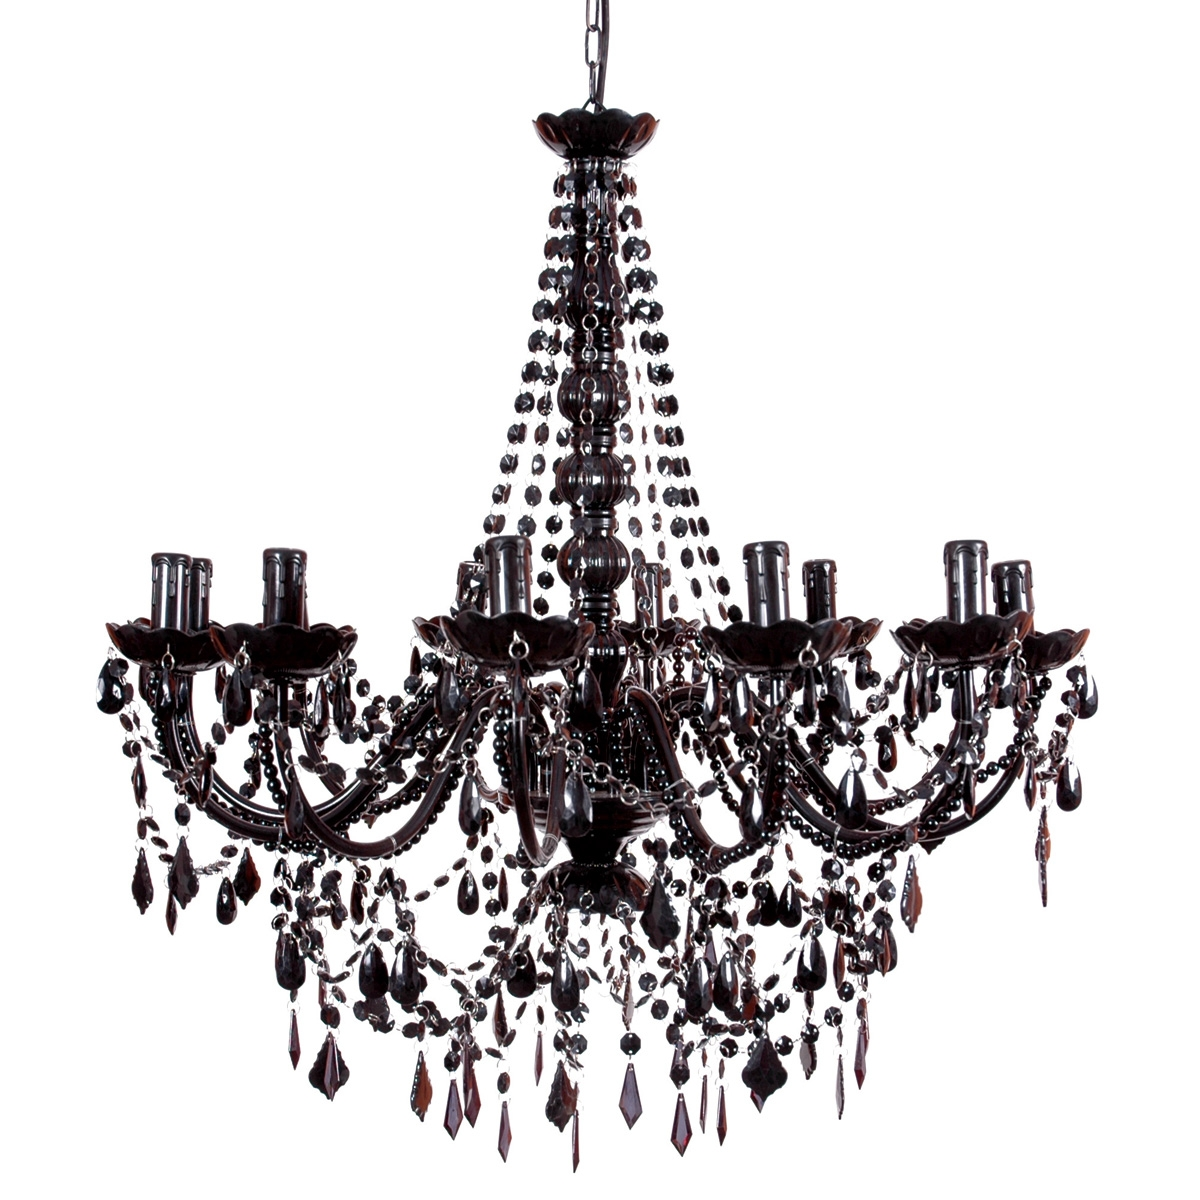 Bedroom Black Chandeliers For Lighting Style Best Chandelier Throughout Black Chandeliers (Image 2 of 15)